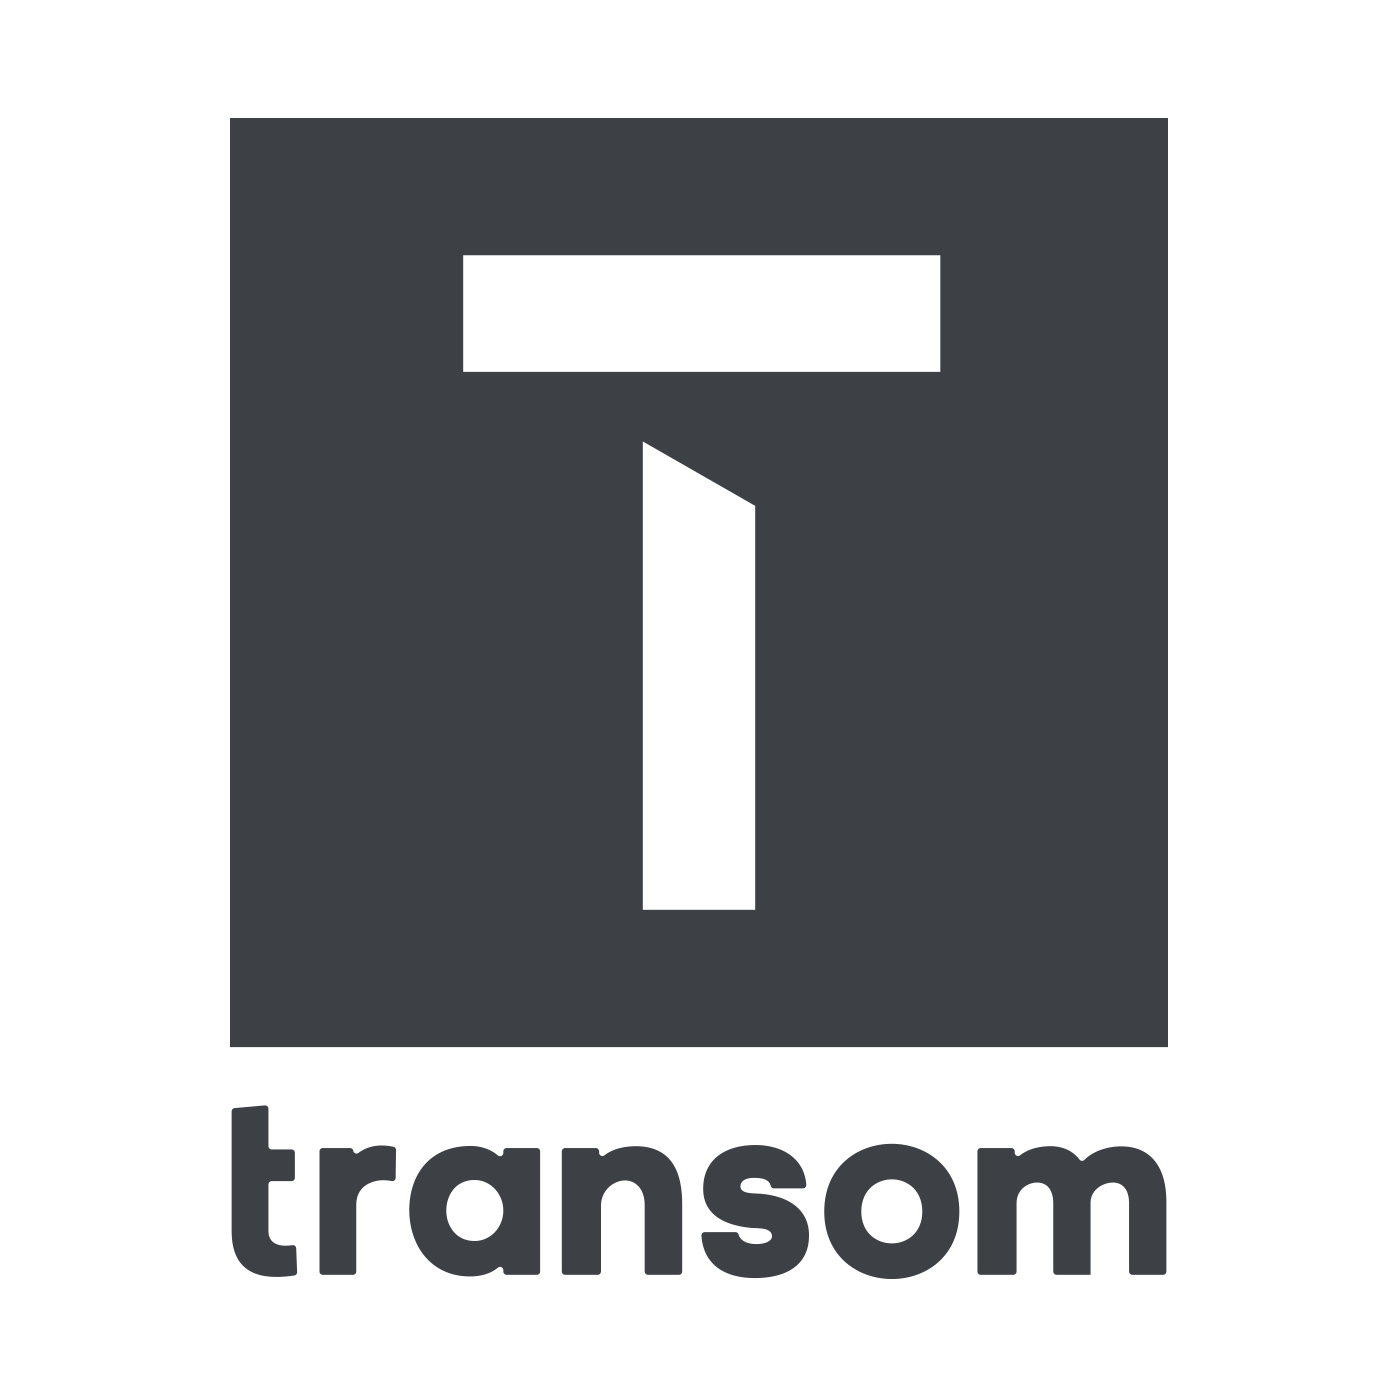 Transom - A Showcase and Workshop for New Public Radio